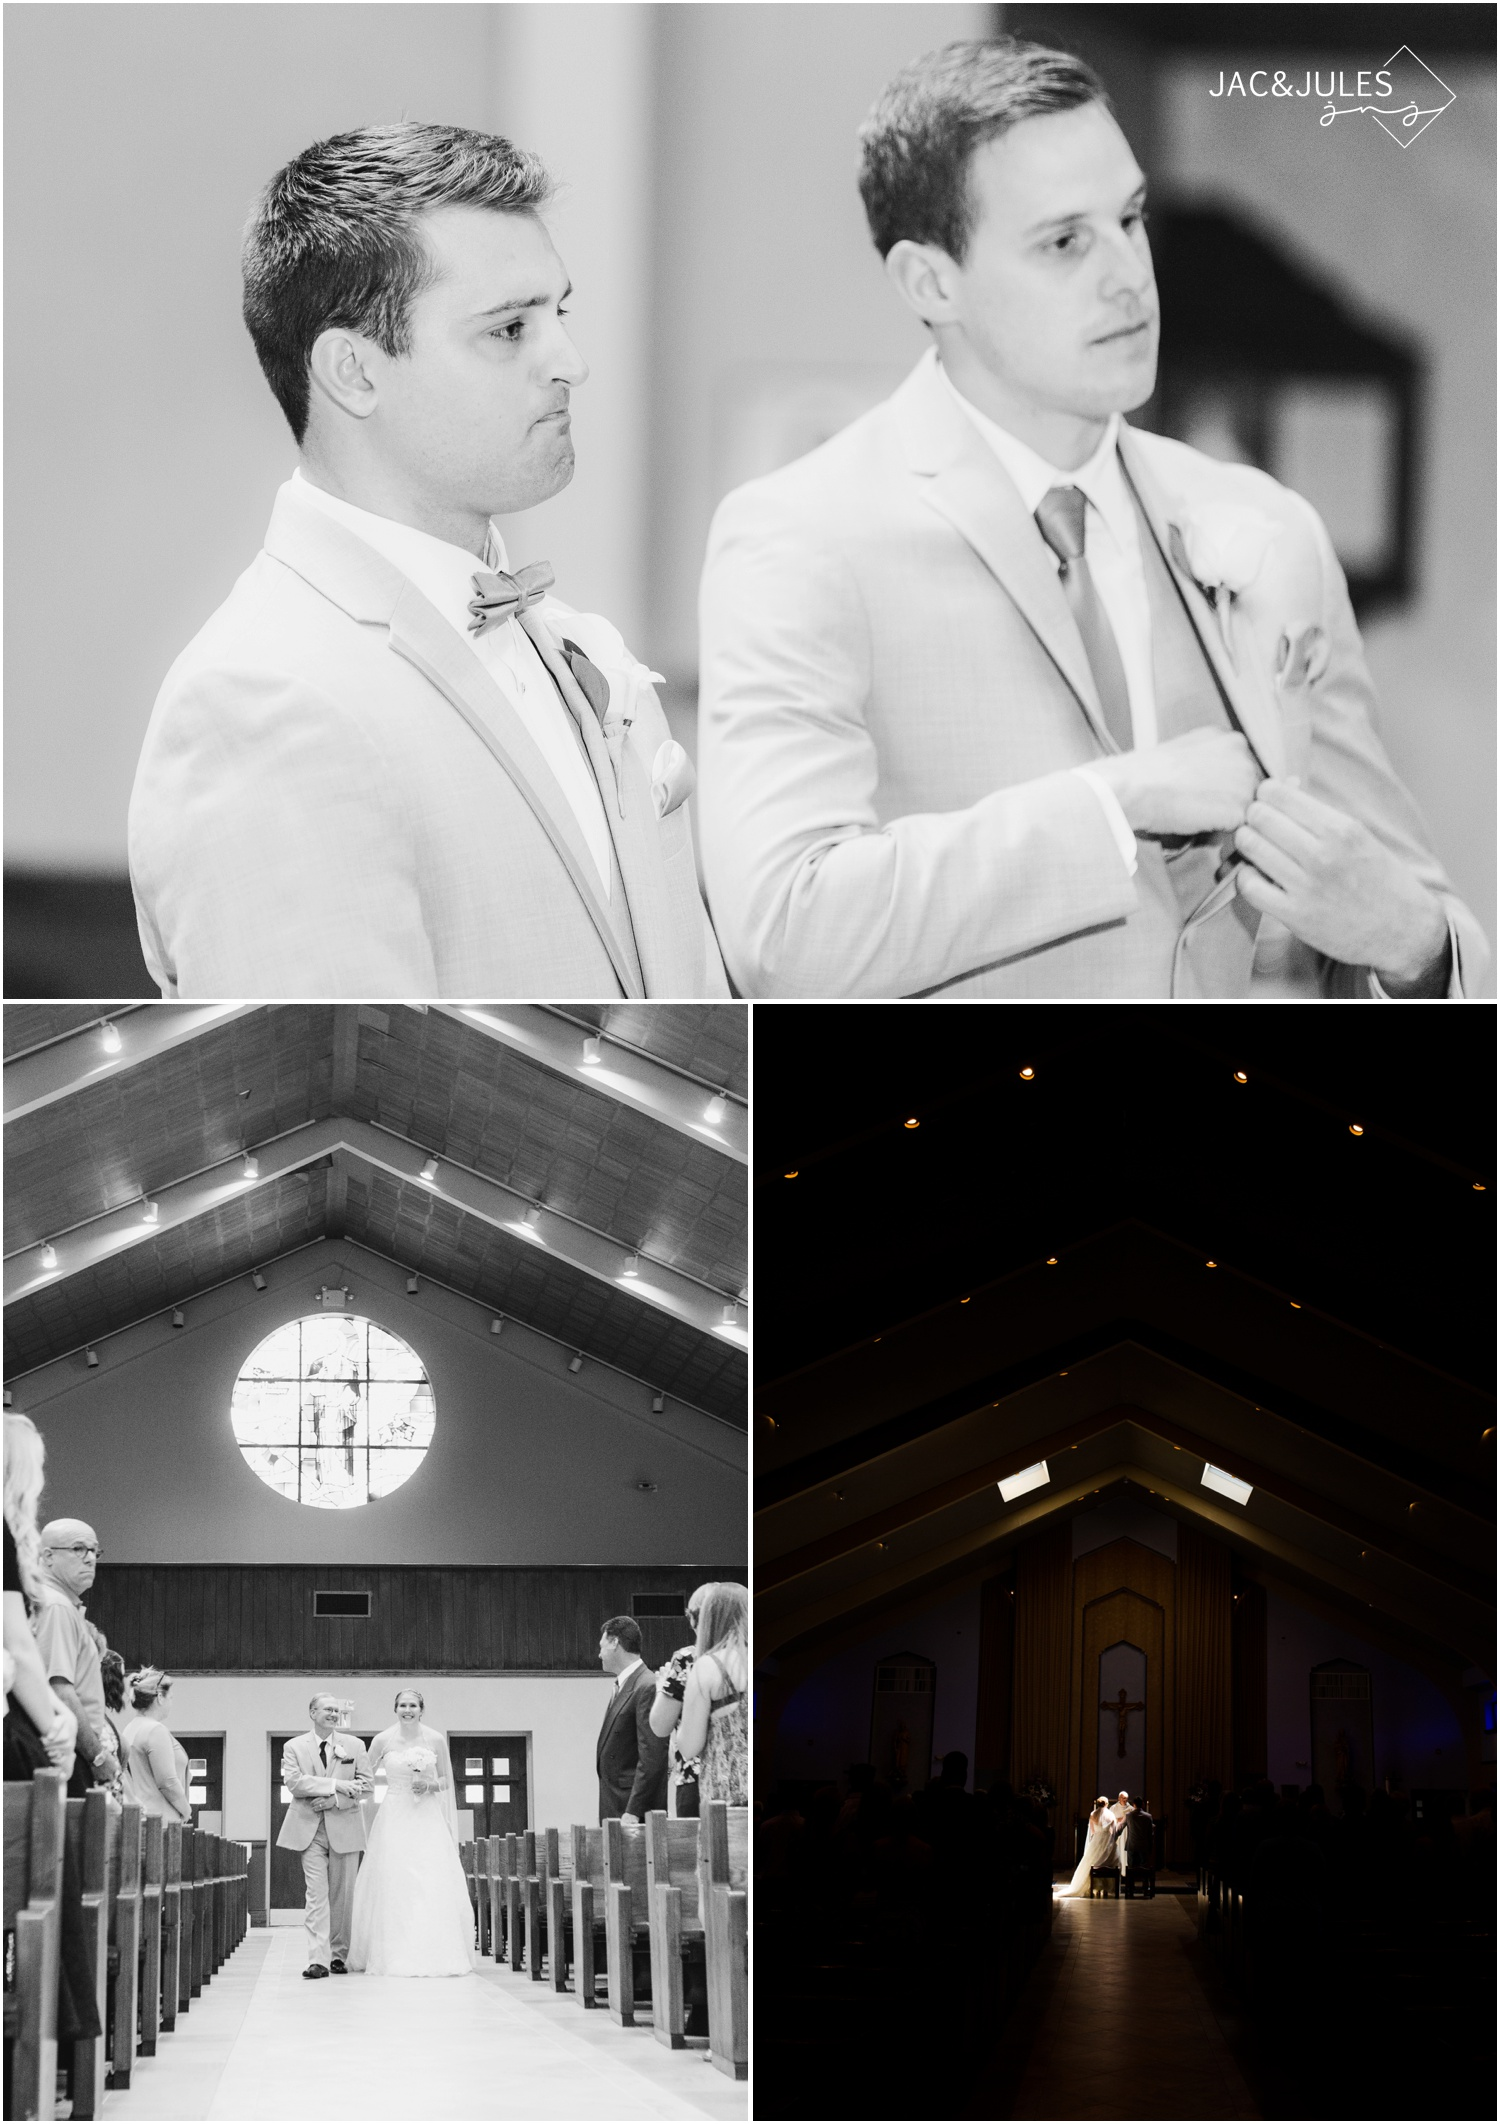 grooms reaction as bride walks down the aisle.  dramatic church wedding ceremony photo.